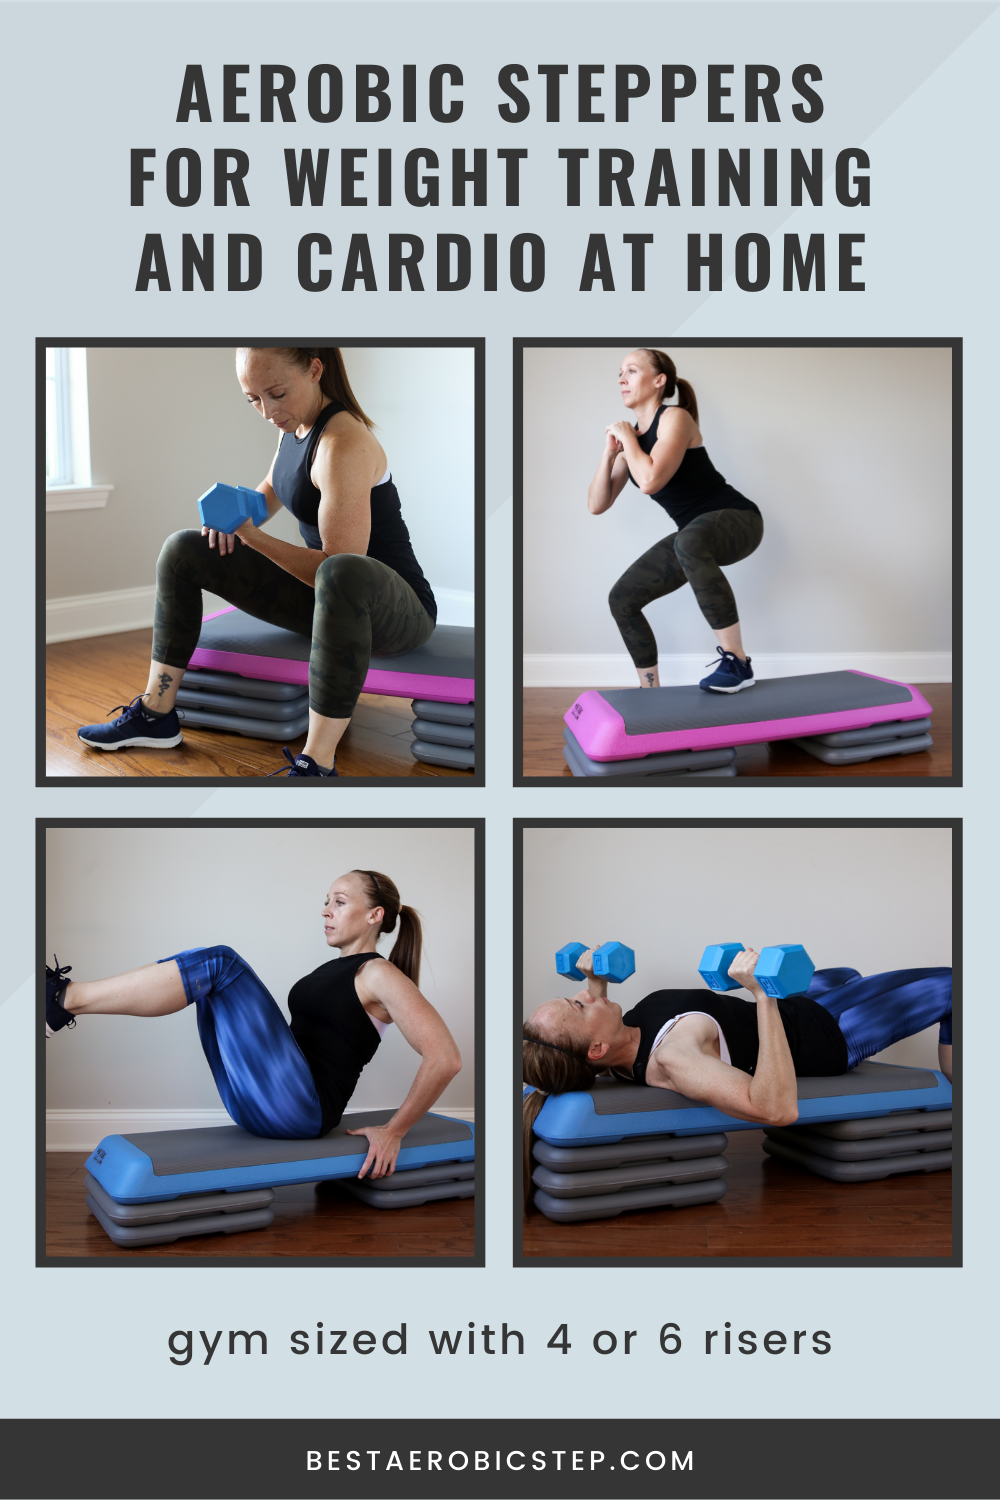 Aerobic Steppers for Weight Training and At-Home Cardio Workouts for Women